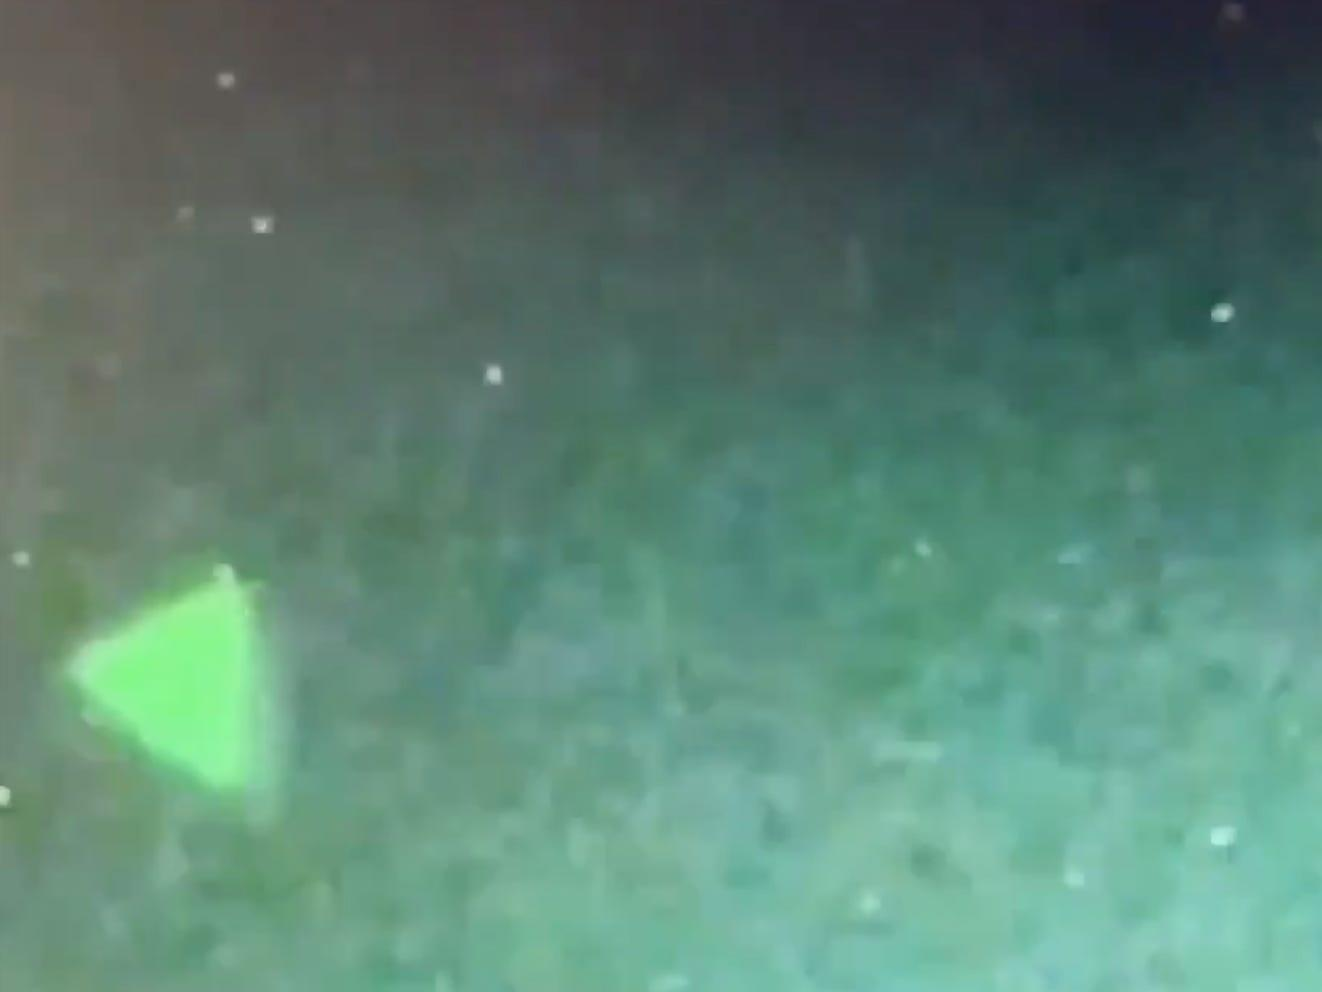 The Pentagon confirmed that a video showing a triangular UFO is real and taken by the US Navy